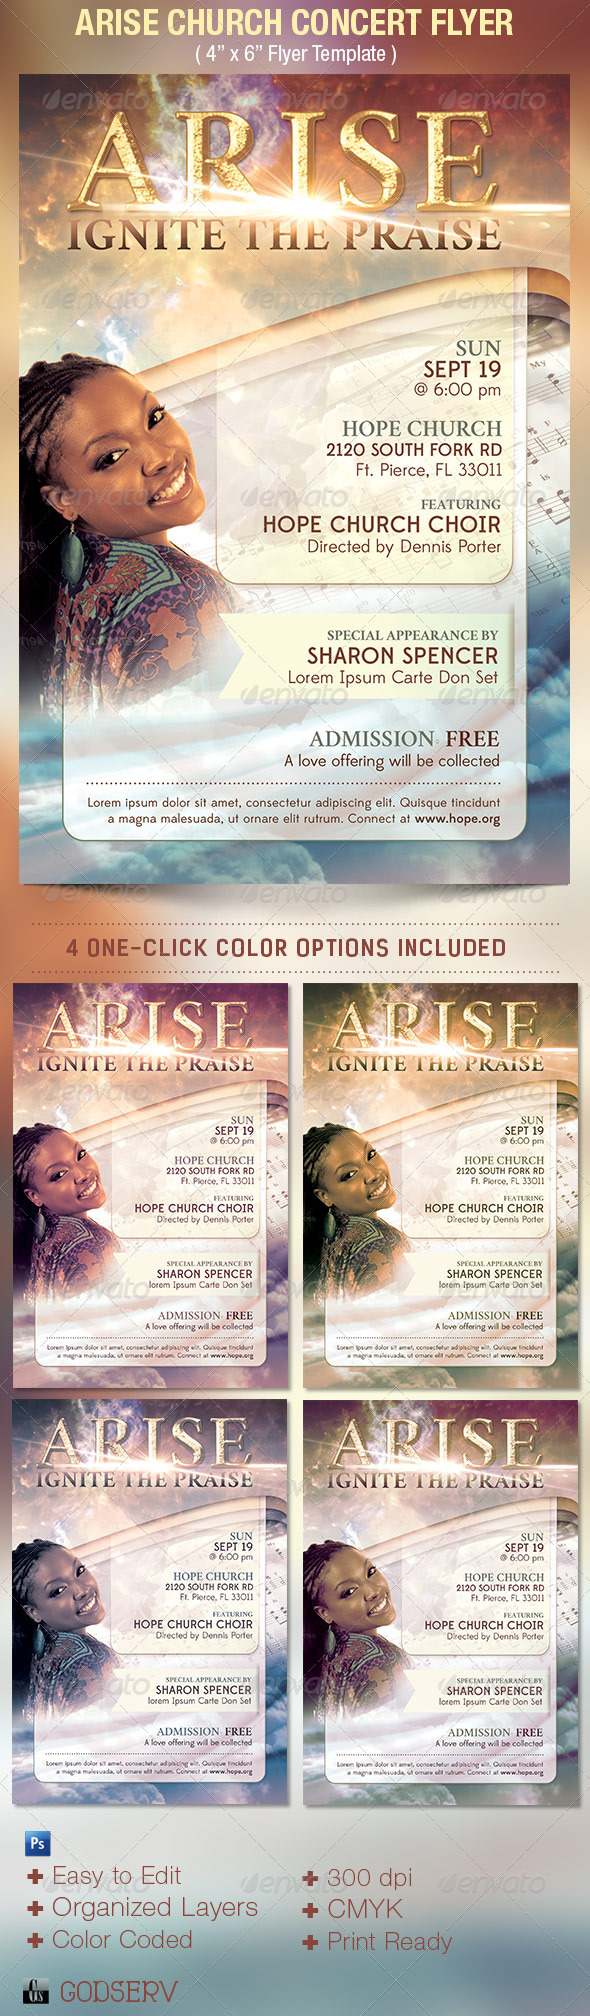 Arise Church Concert Flyer Template